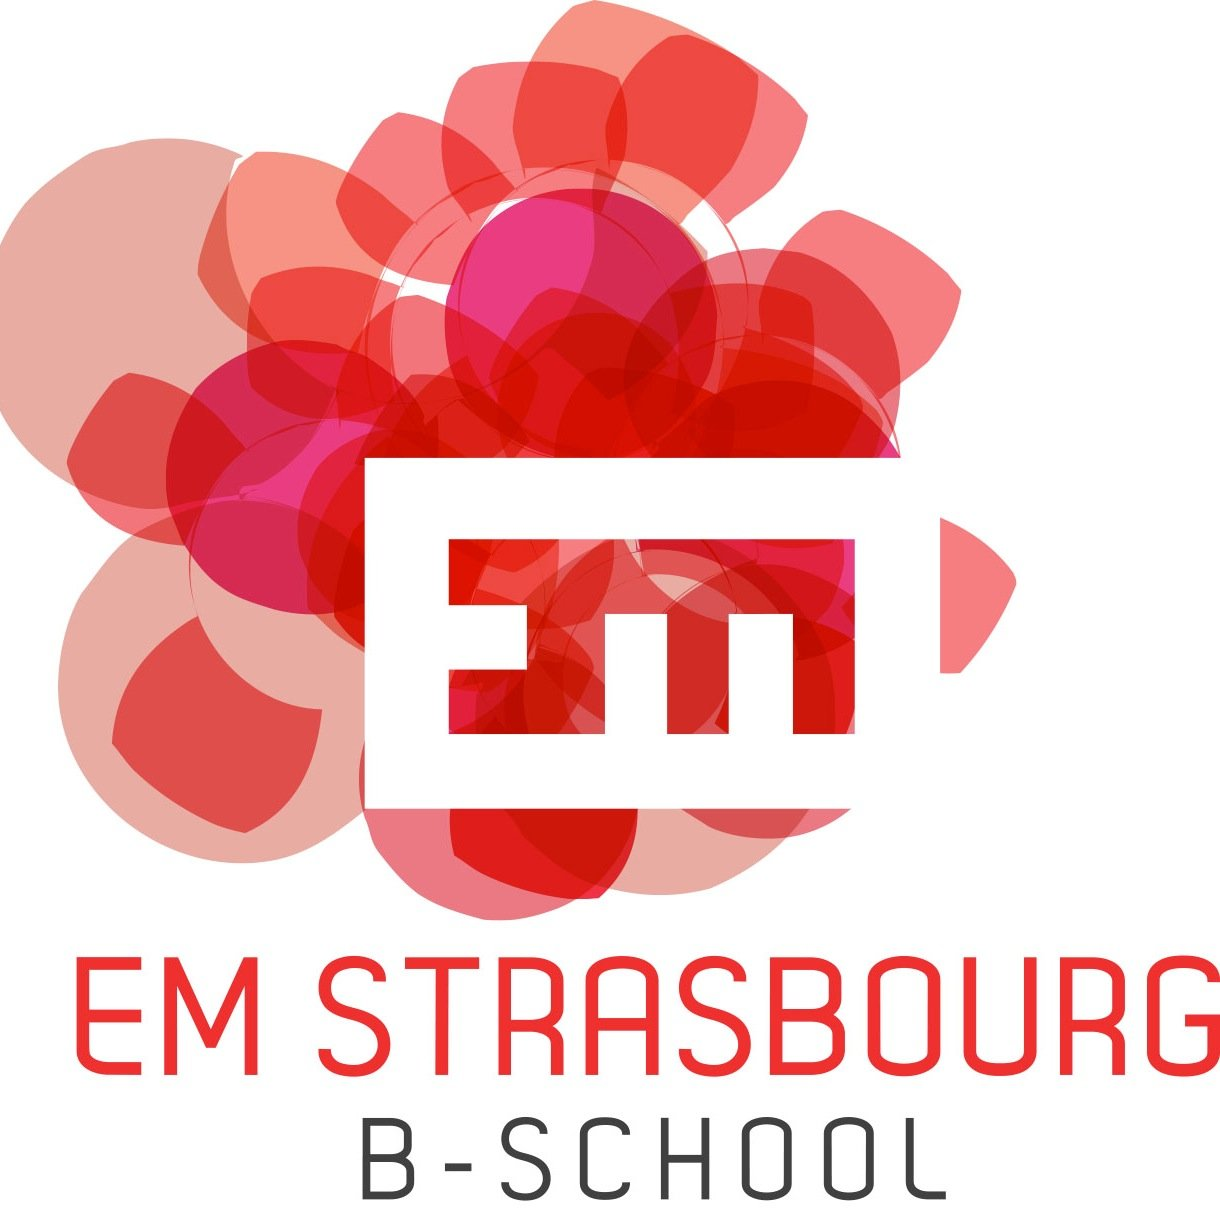 Executive MBA Marketing et management de la pharmacie d'officine